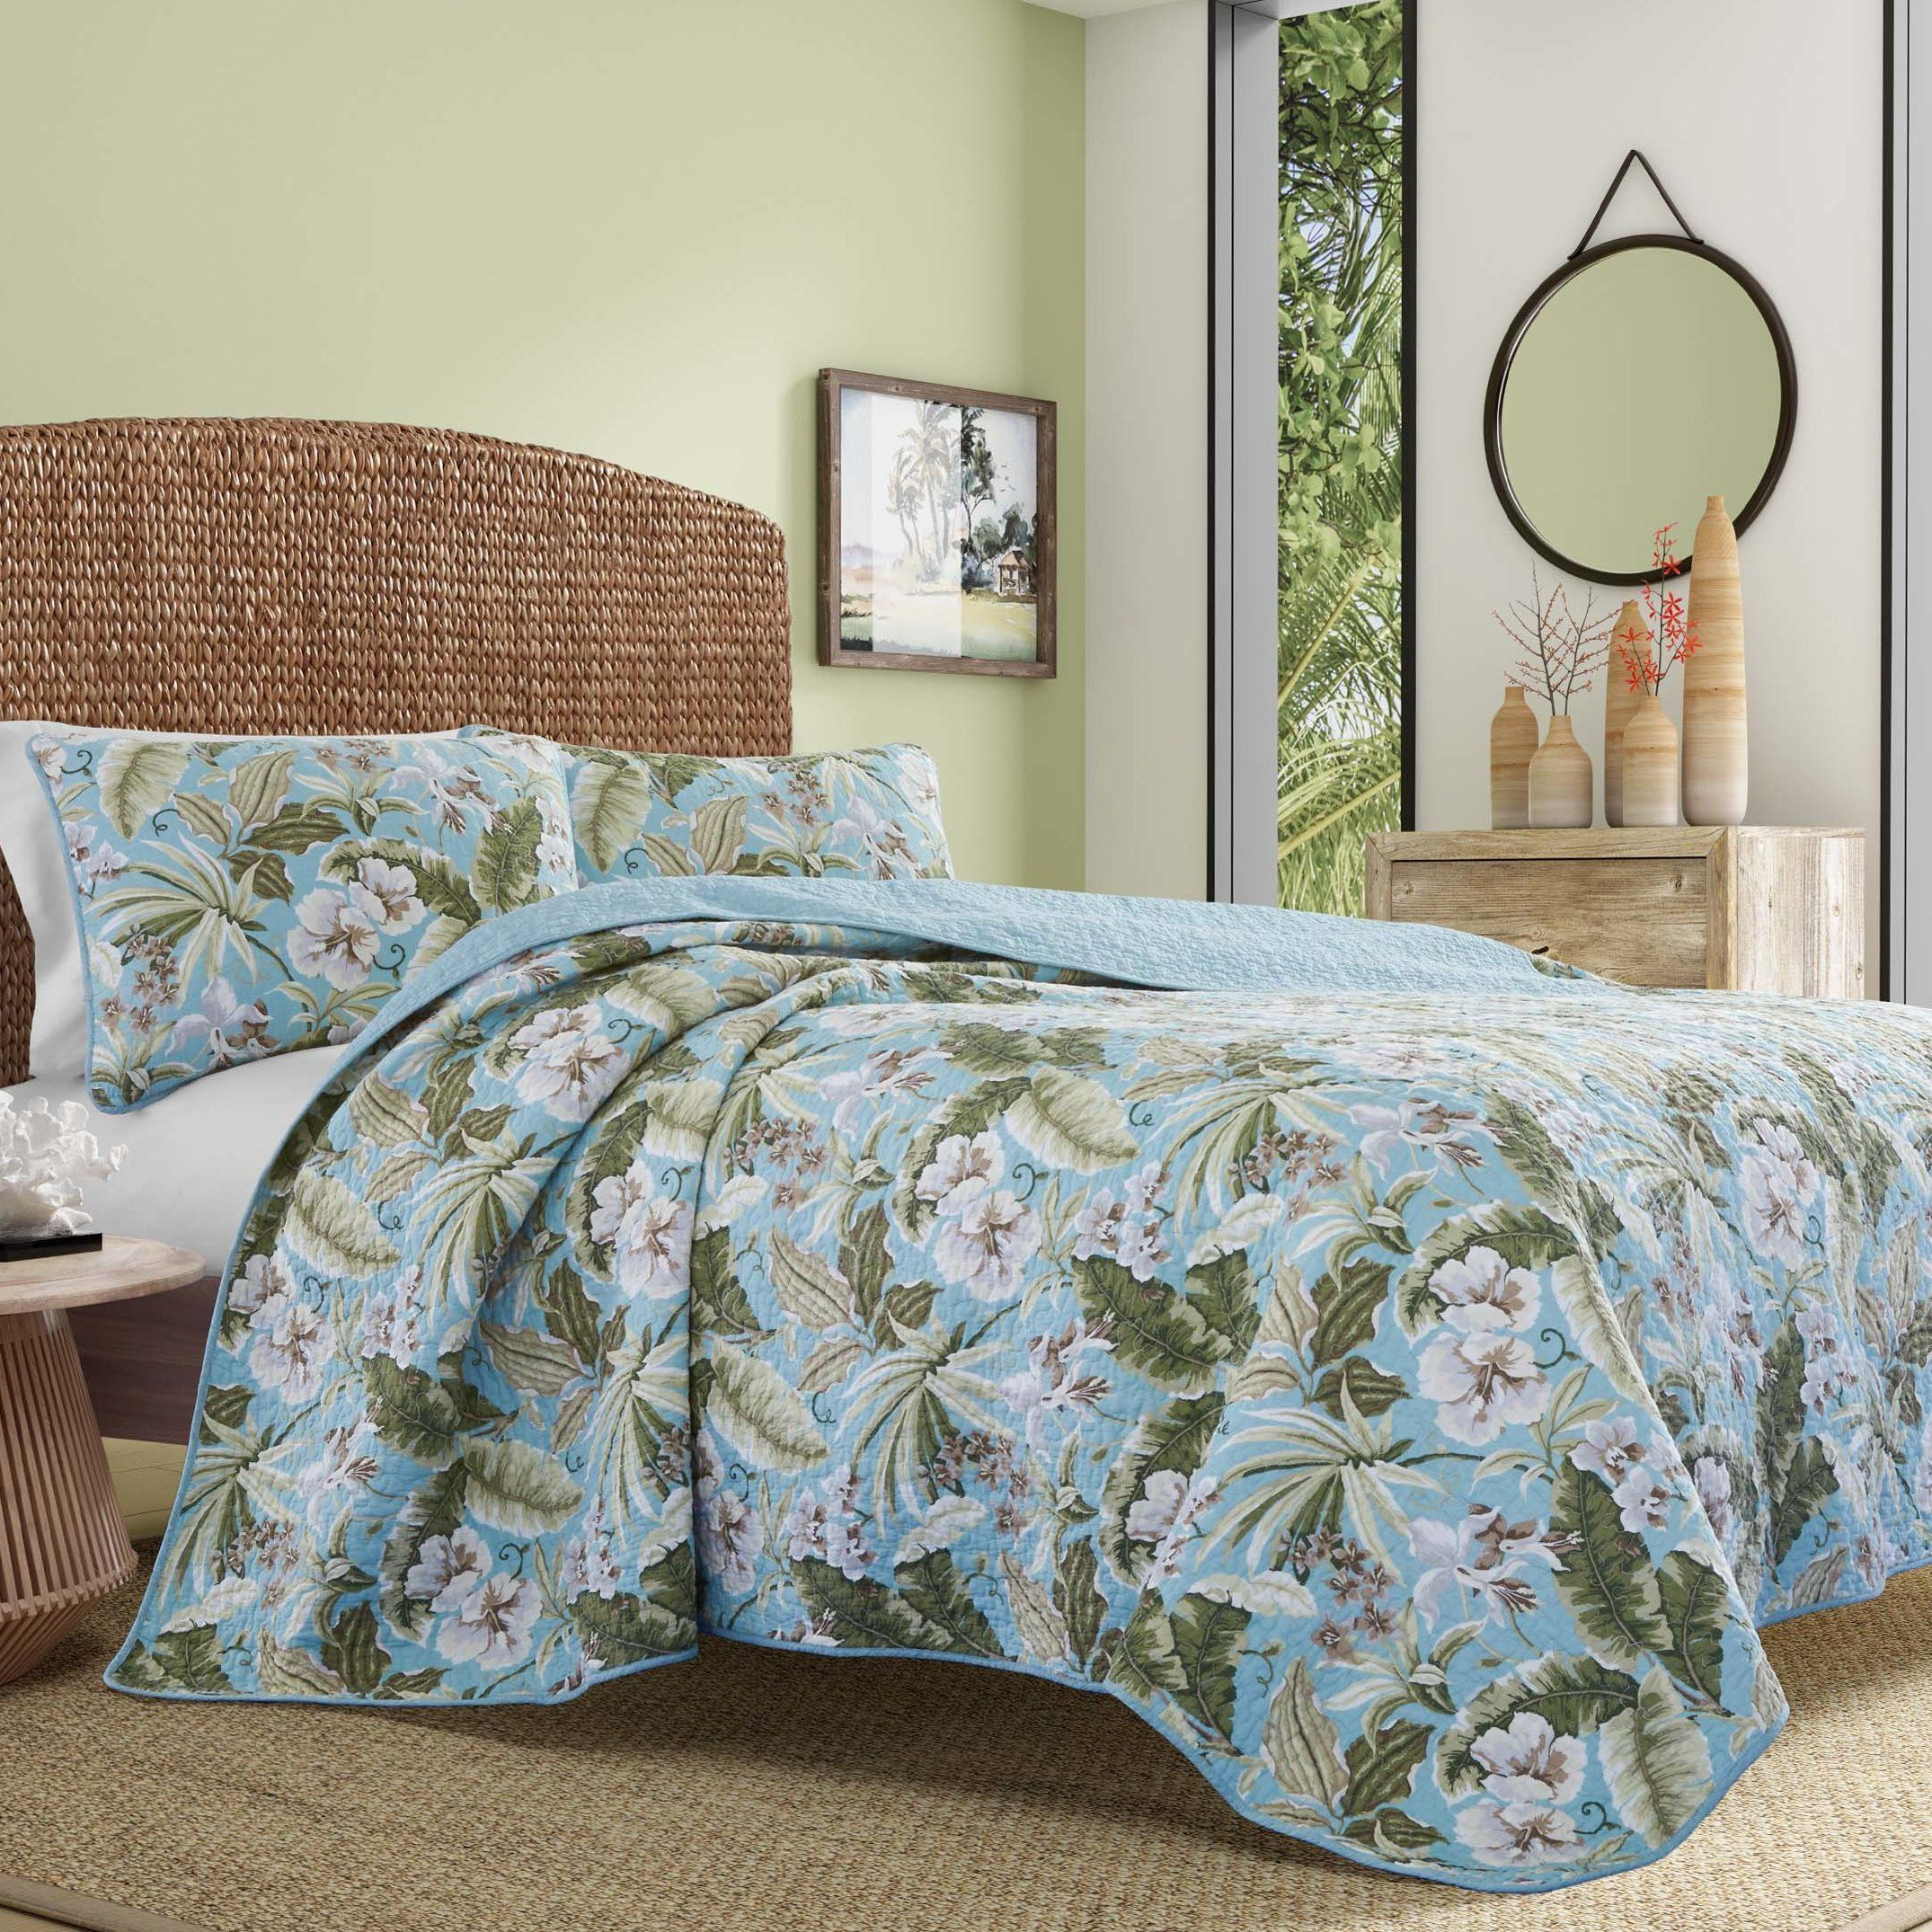 Best Coastal Bedding Sets Discover The Best Beach Themed Bedding Sets Including Comforters Coastal Bedding Sets Beach Bedding Sets Coastal Bedroom Decorating